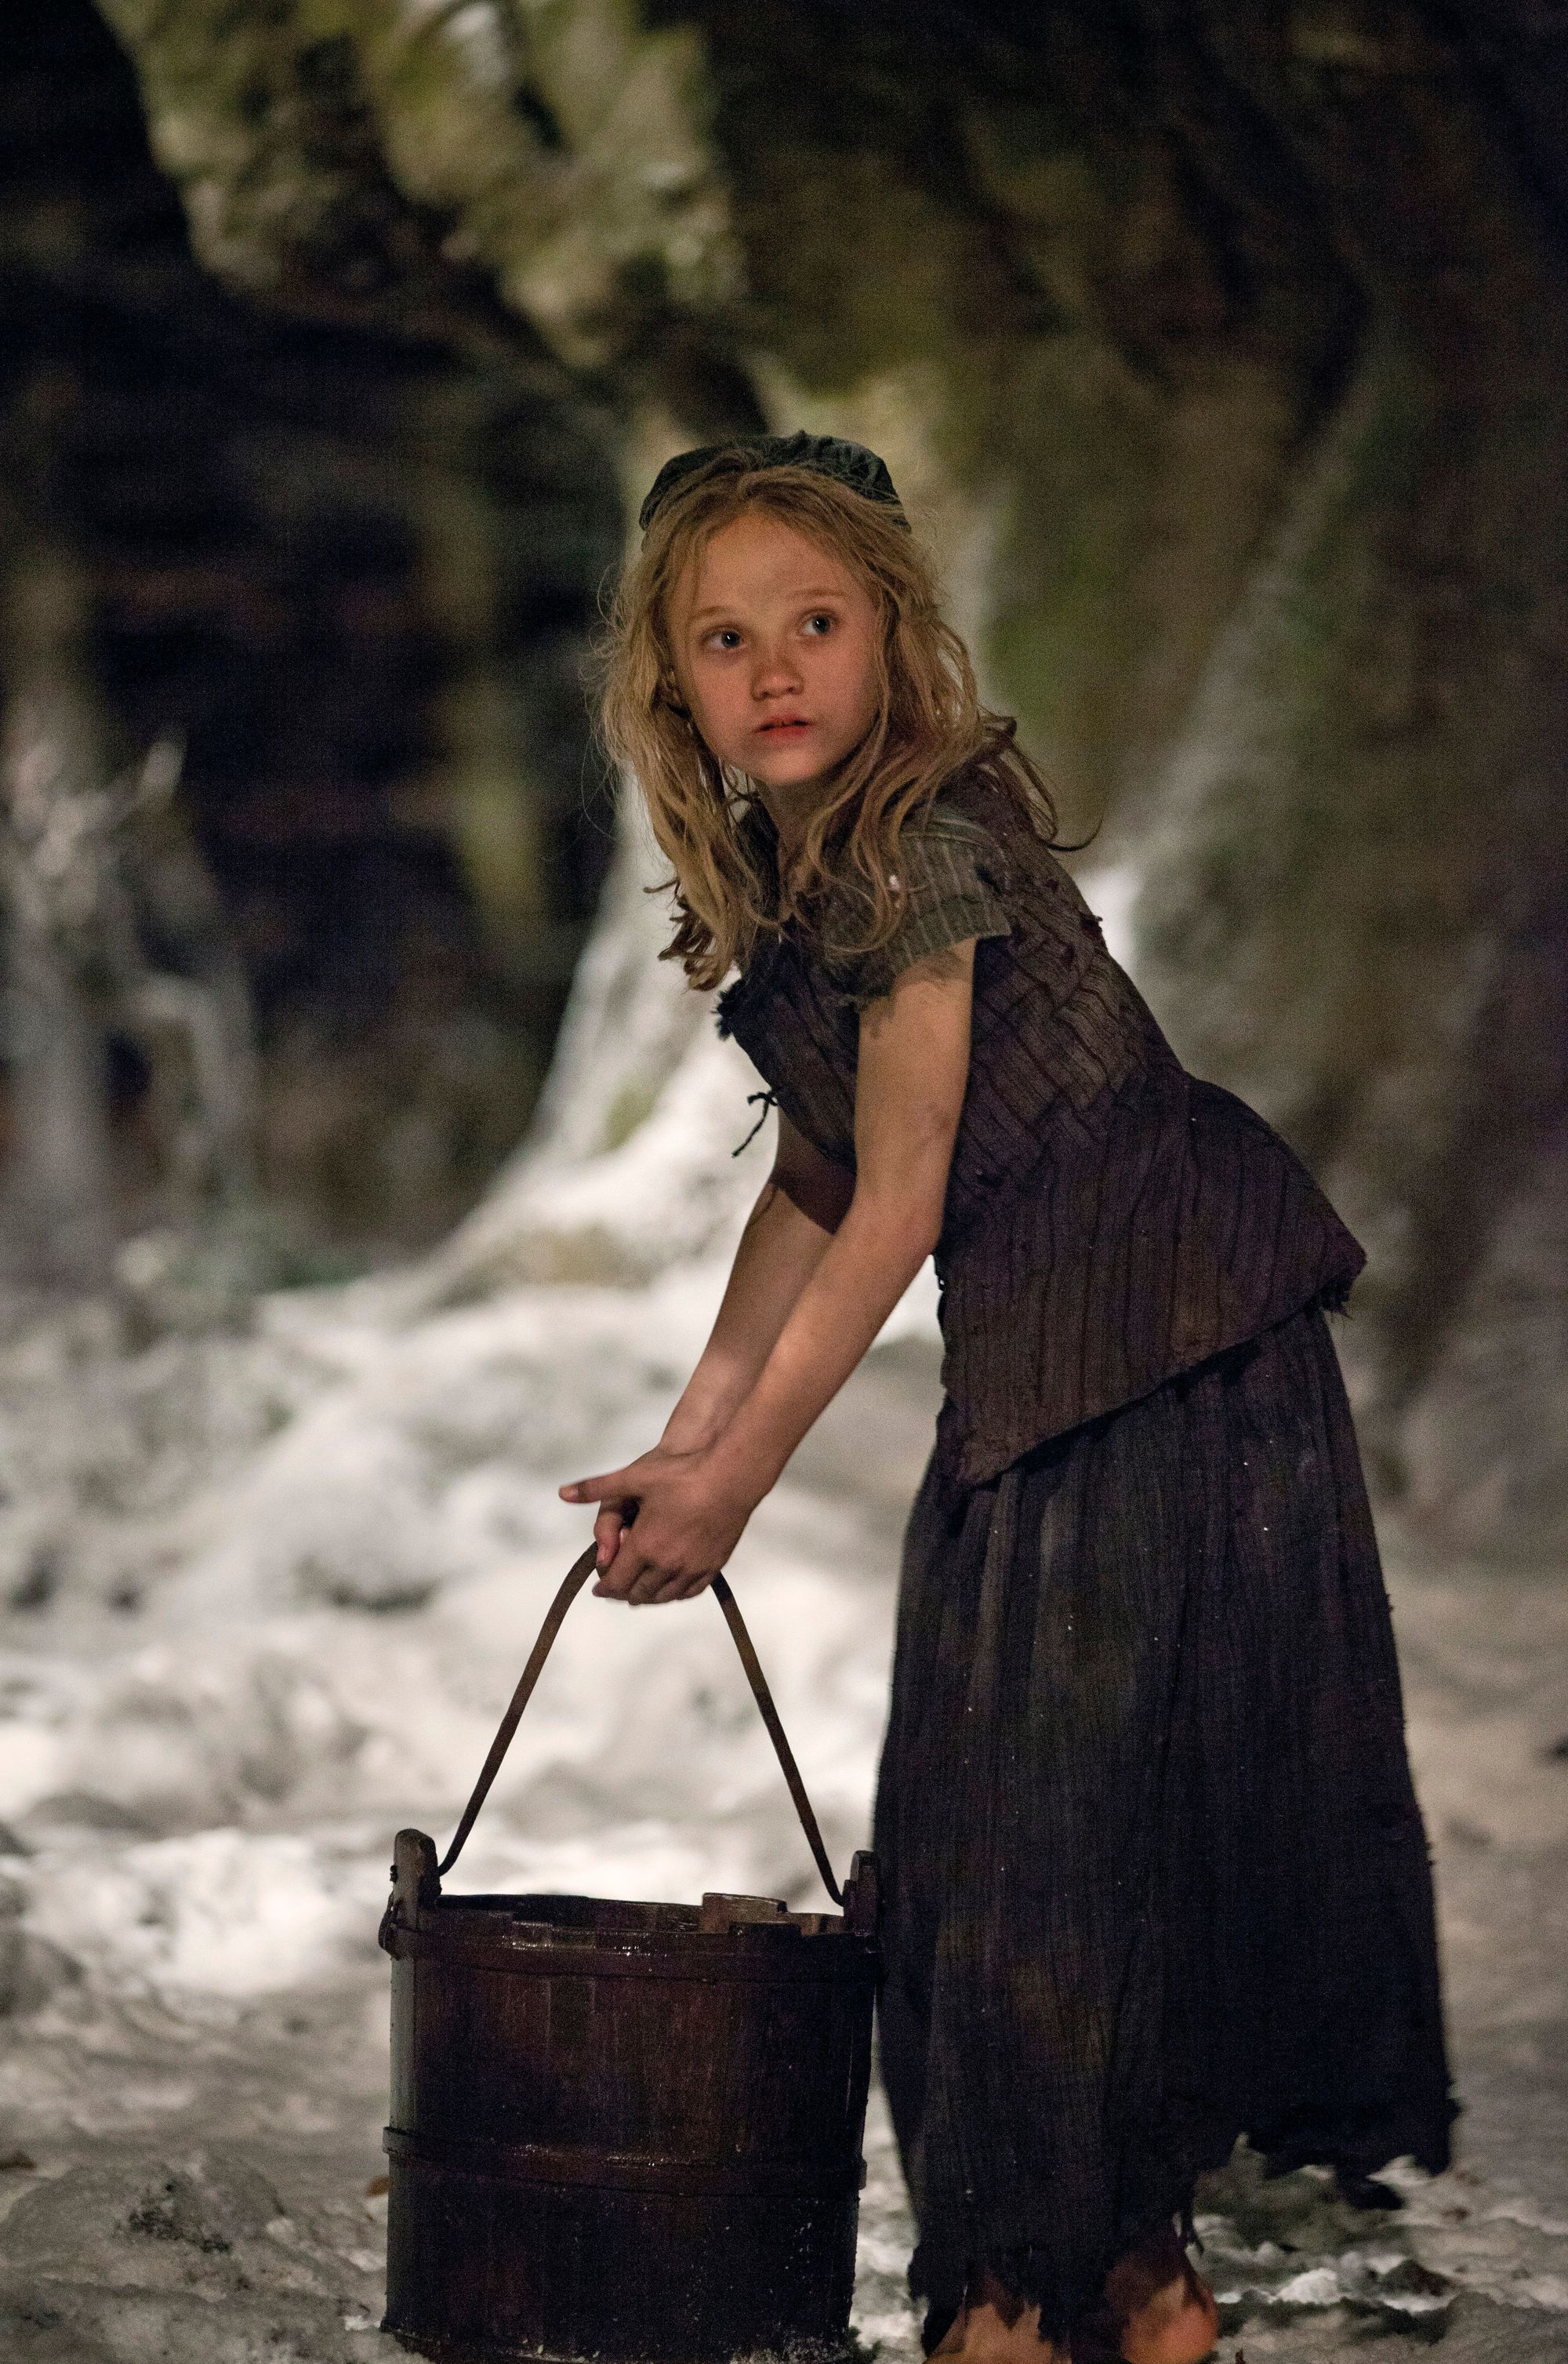 Photogramme du film musical Les Misérables de Tom Hooper, 2012, avec Isabelle Allen (Cosette).